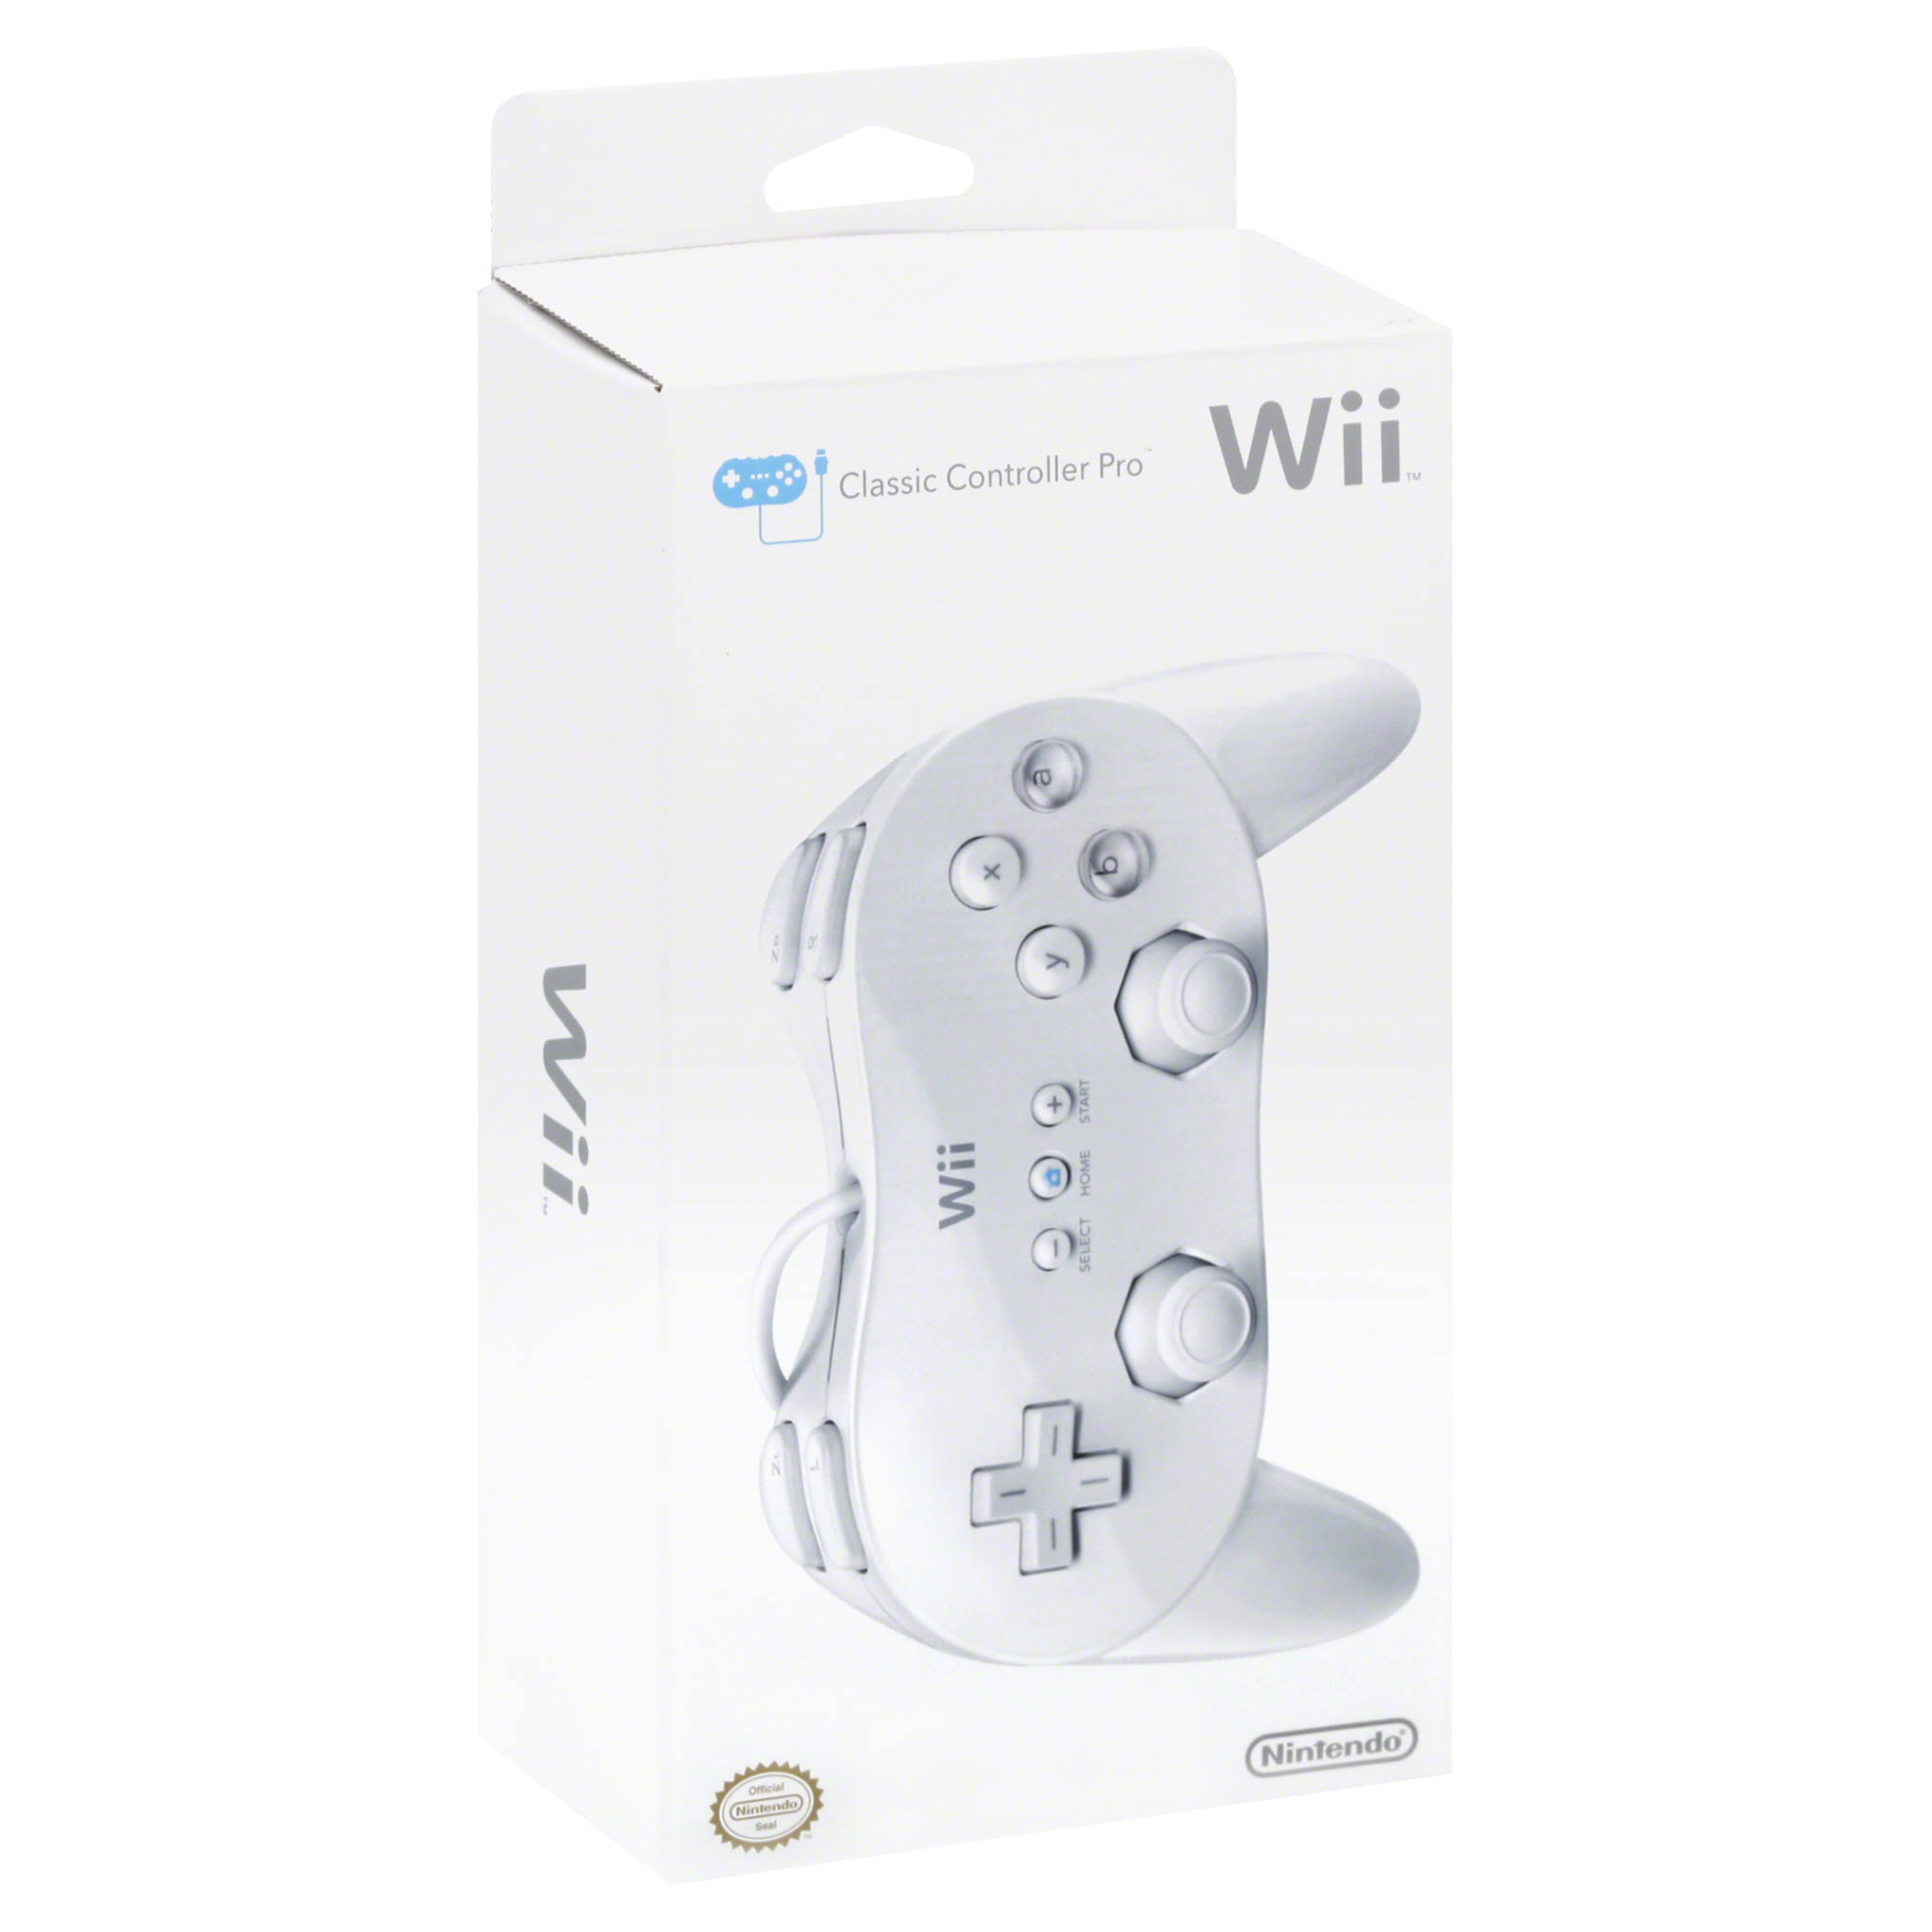 Nintendo Wii Classic Controller Pro - White